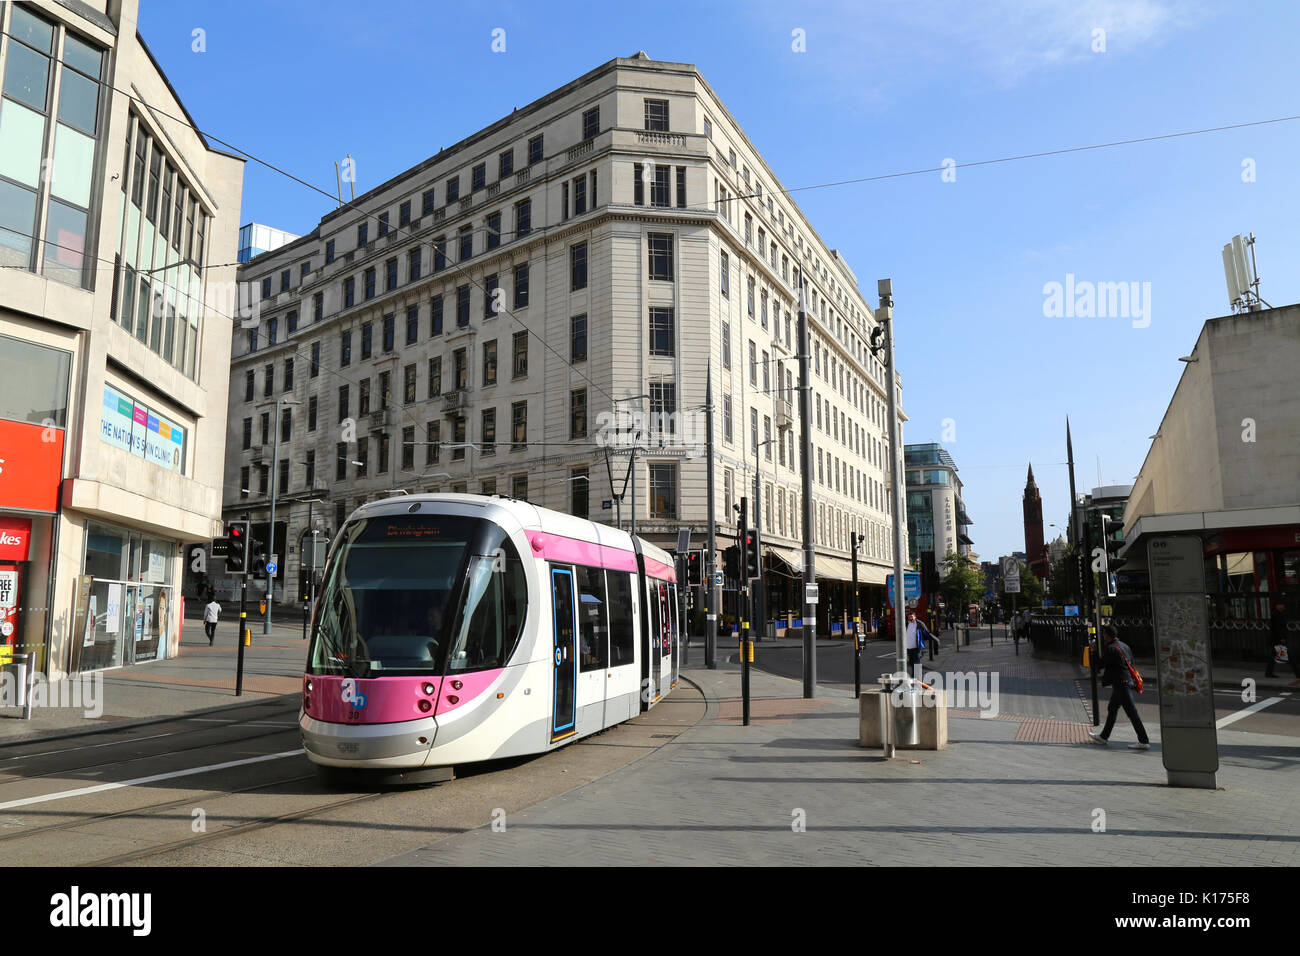 Corporation St, Birmingham city centre UK and a Midland Metro tram service. - Stock Image